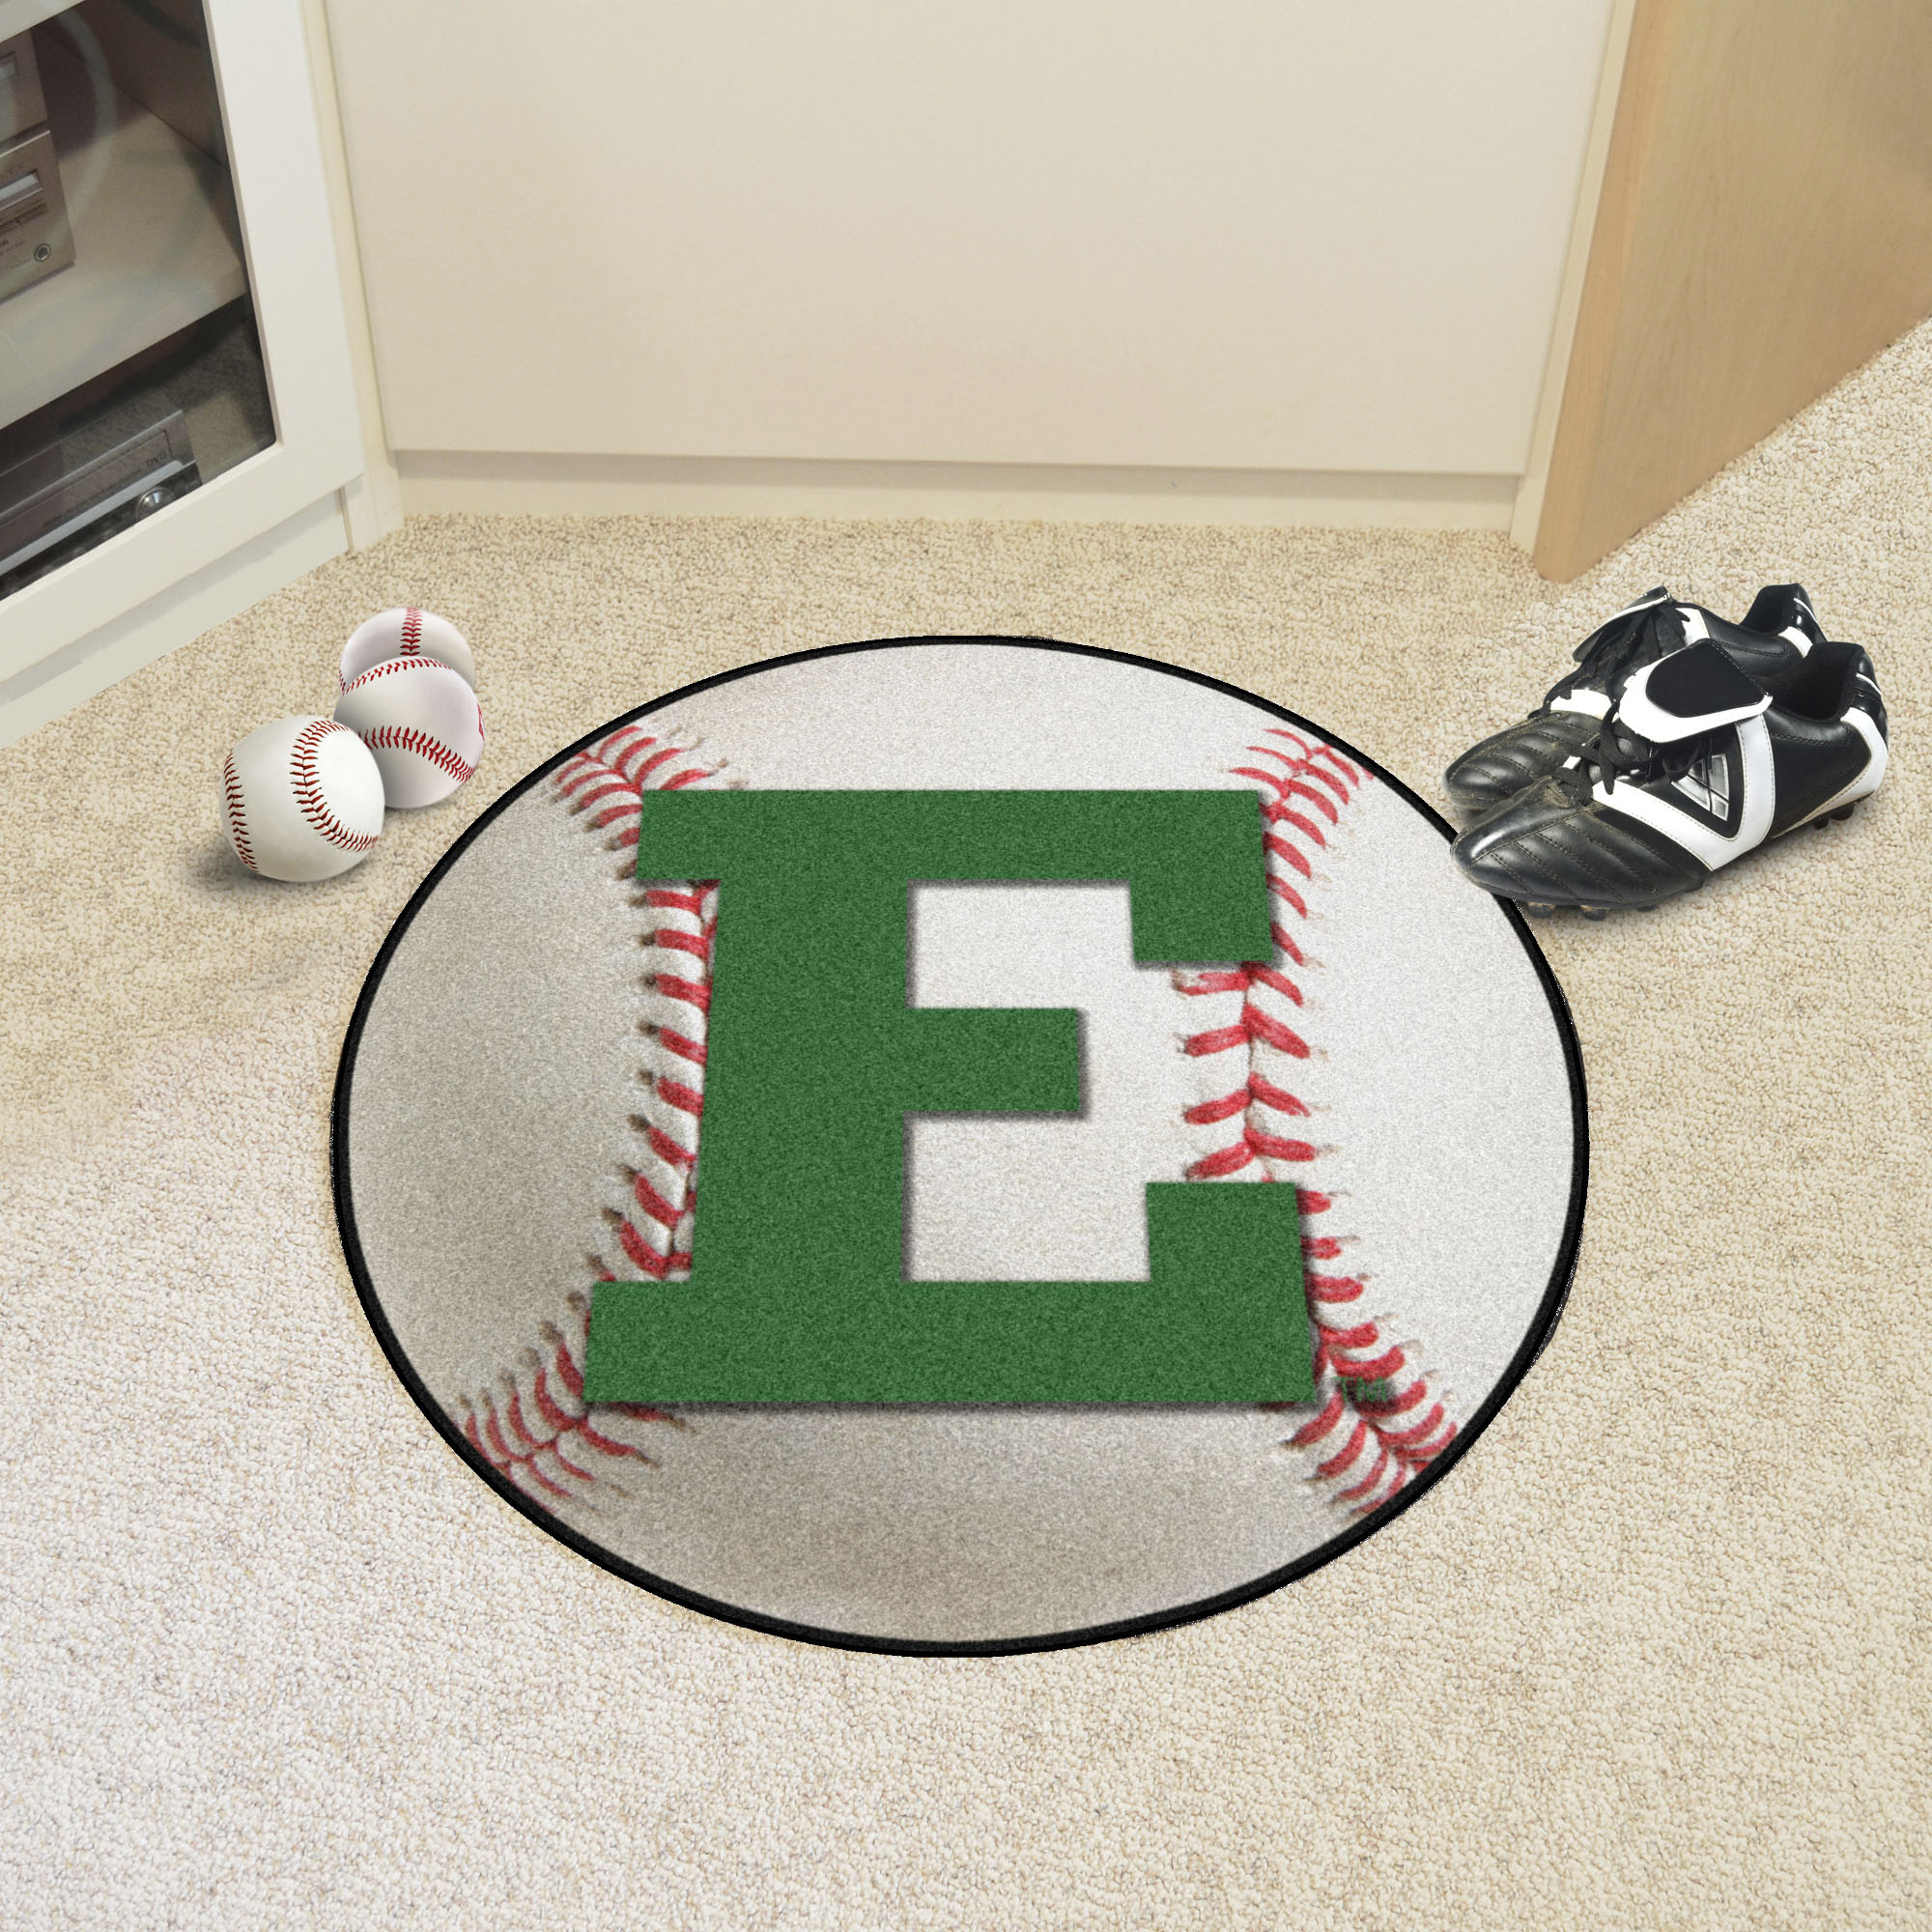 Eastern Michigan University Ball Shaped Area Rugs (Ball Shaped Area Rugs: Baseball)